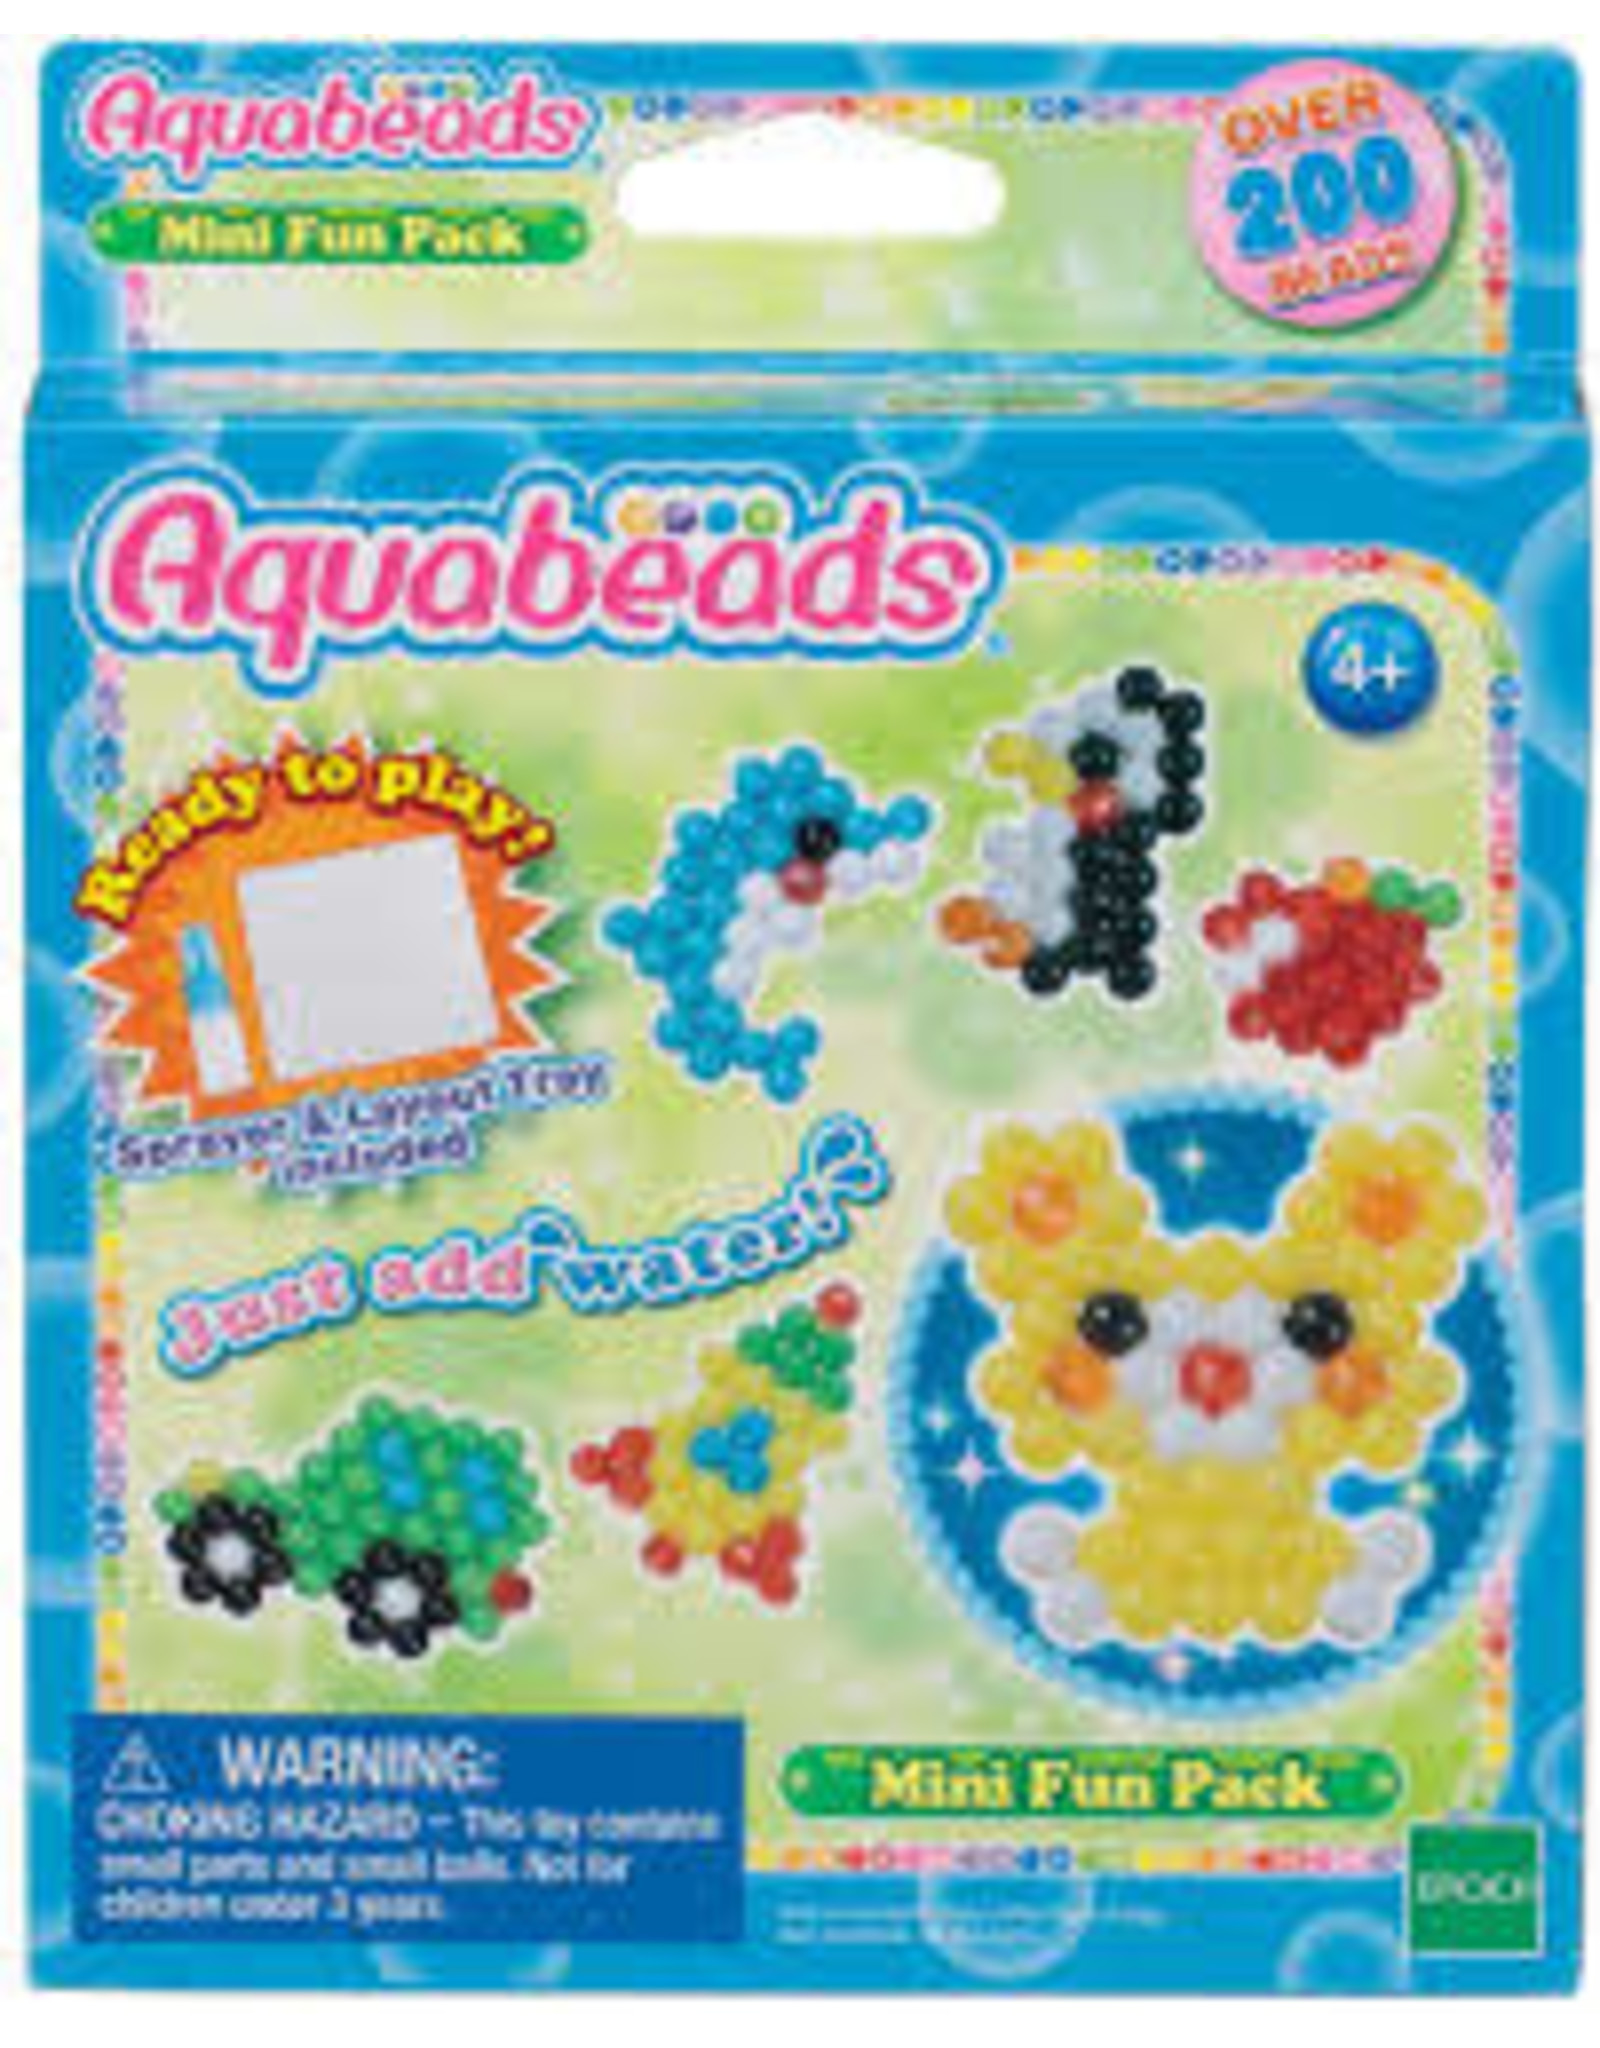 Aquabeads Bilingual Mini Fun Pack